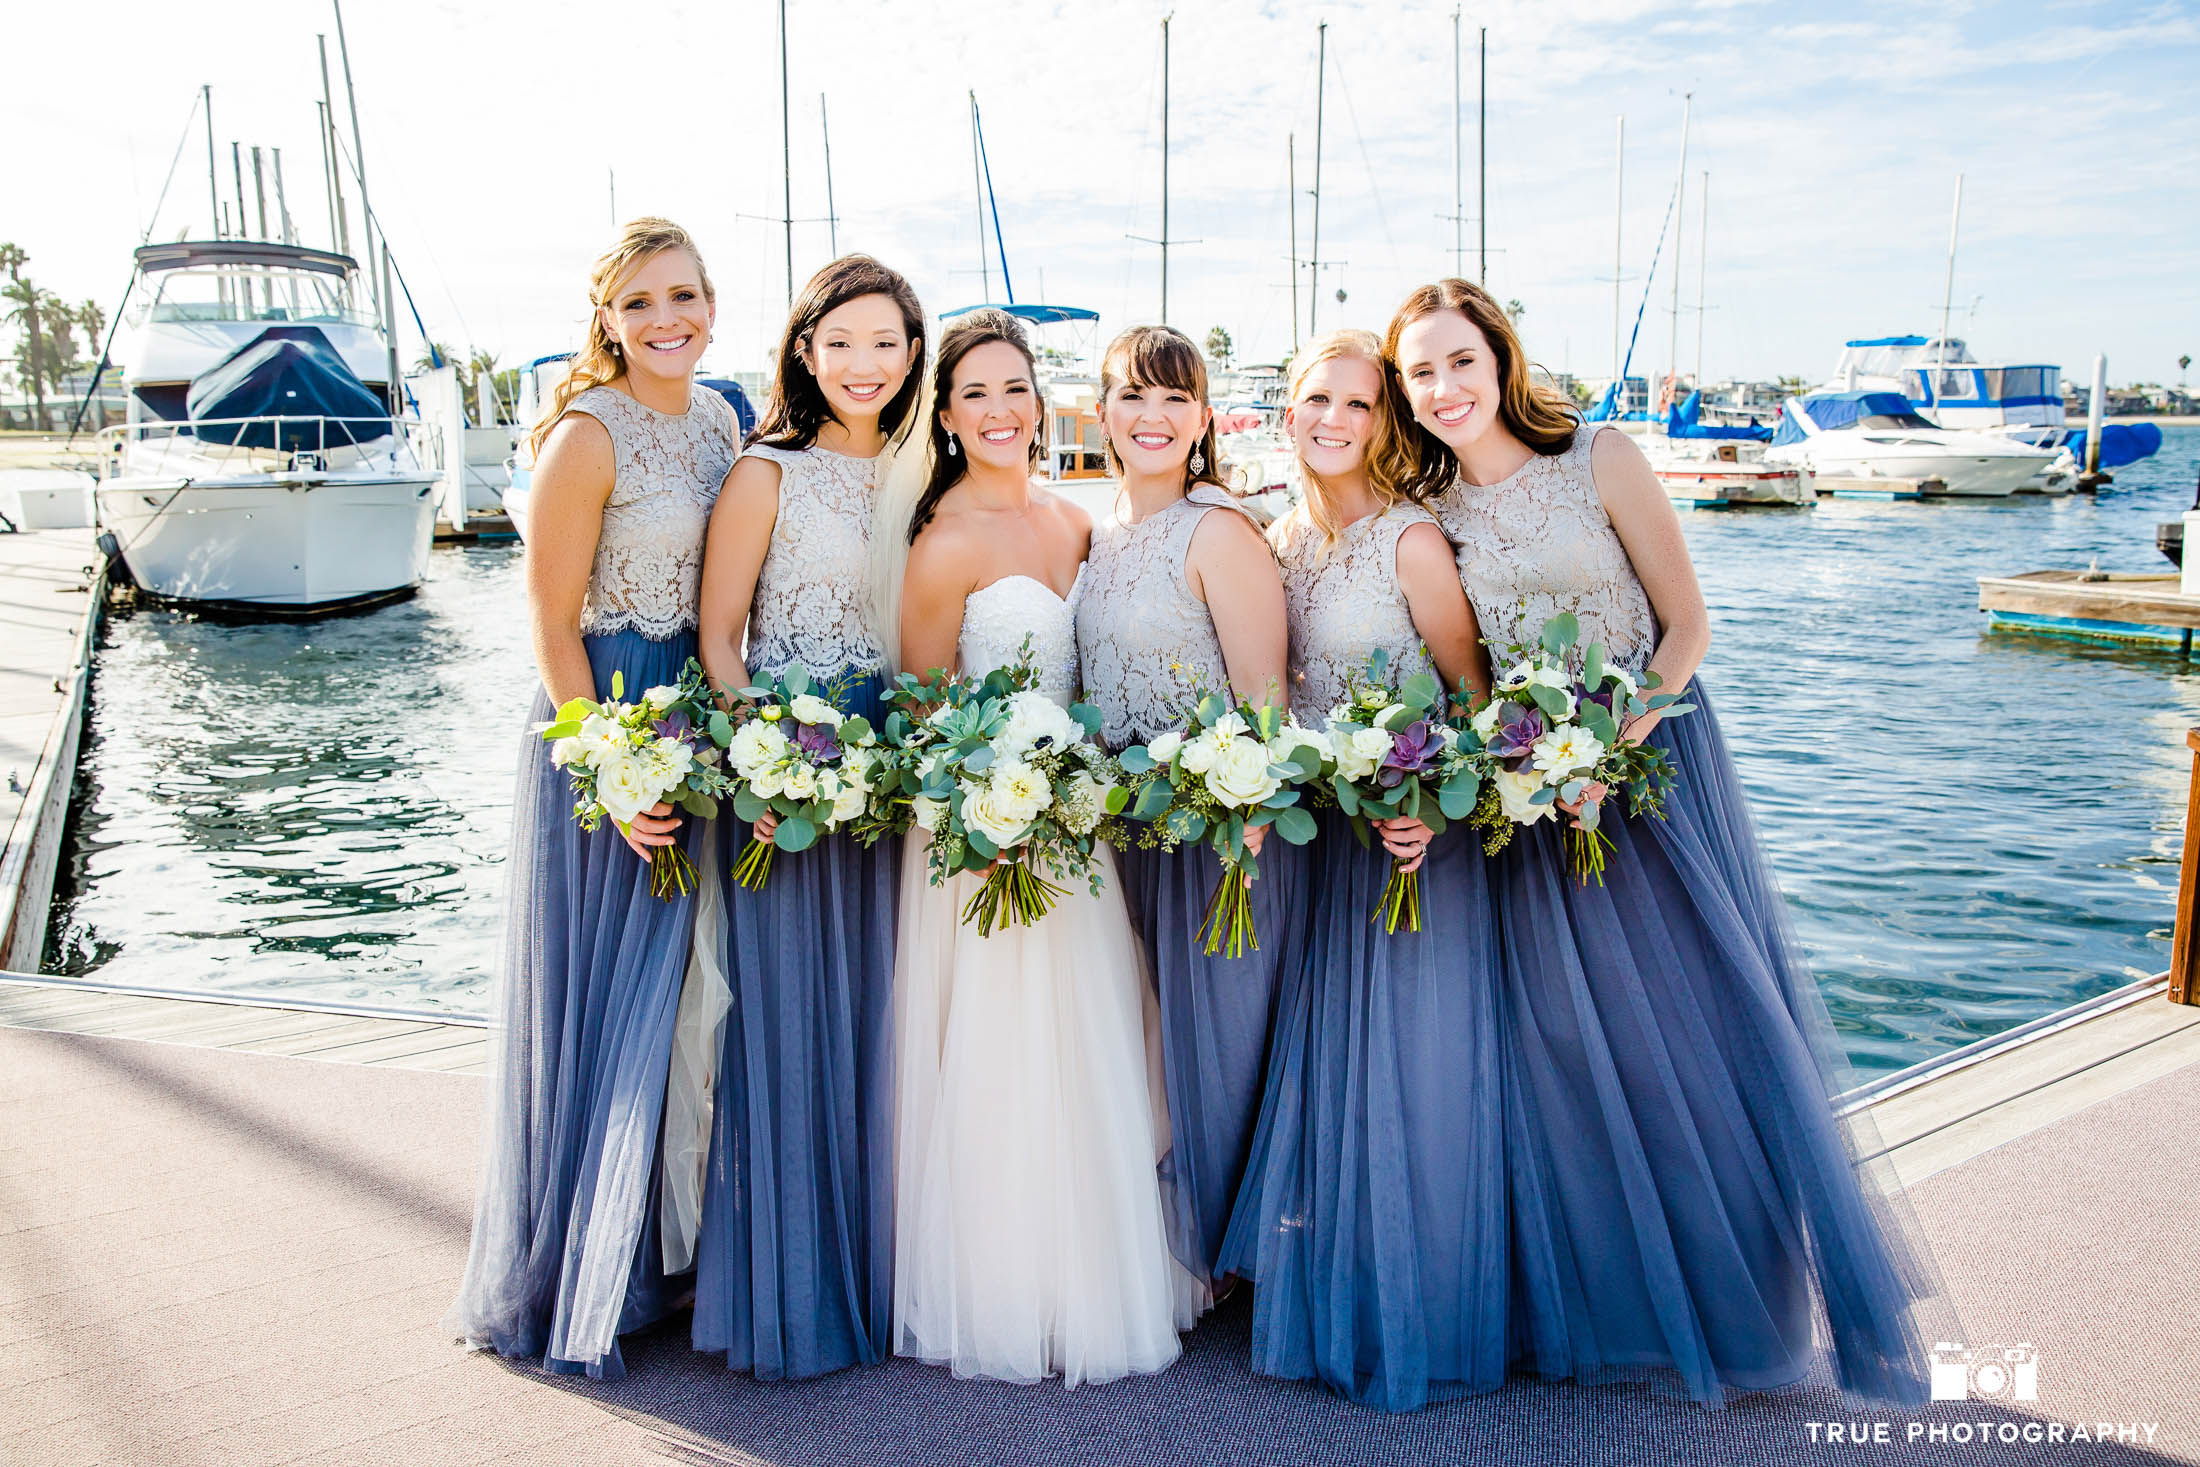 Bride with bridesmaids in 2-piece dresses at marina